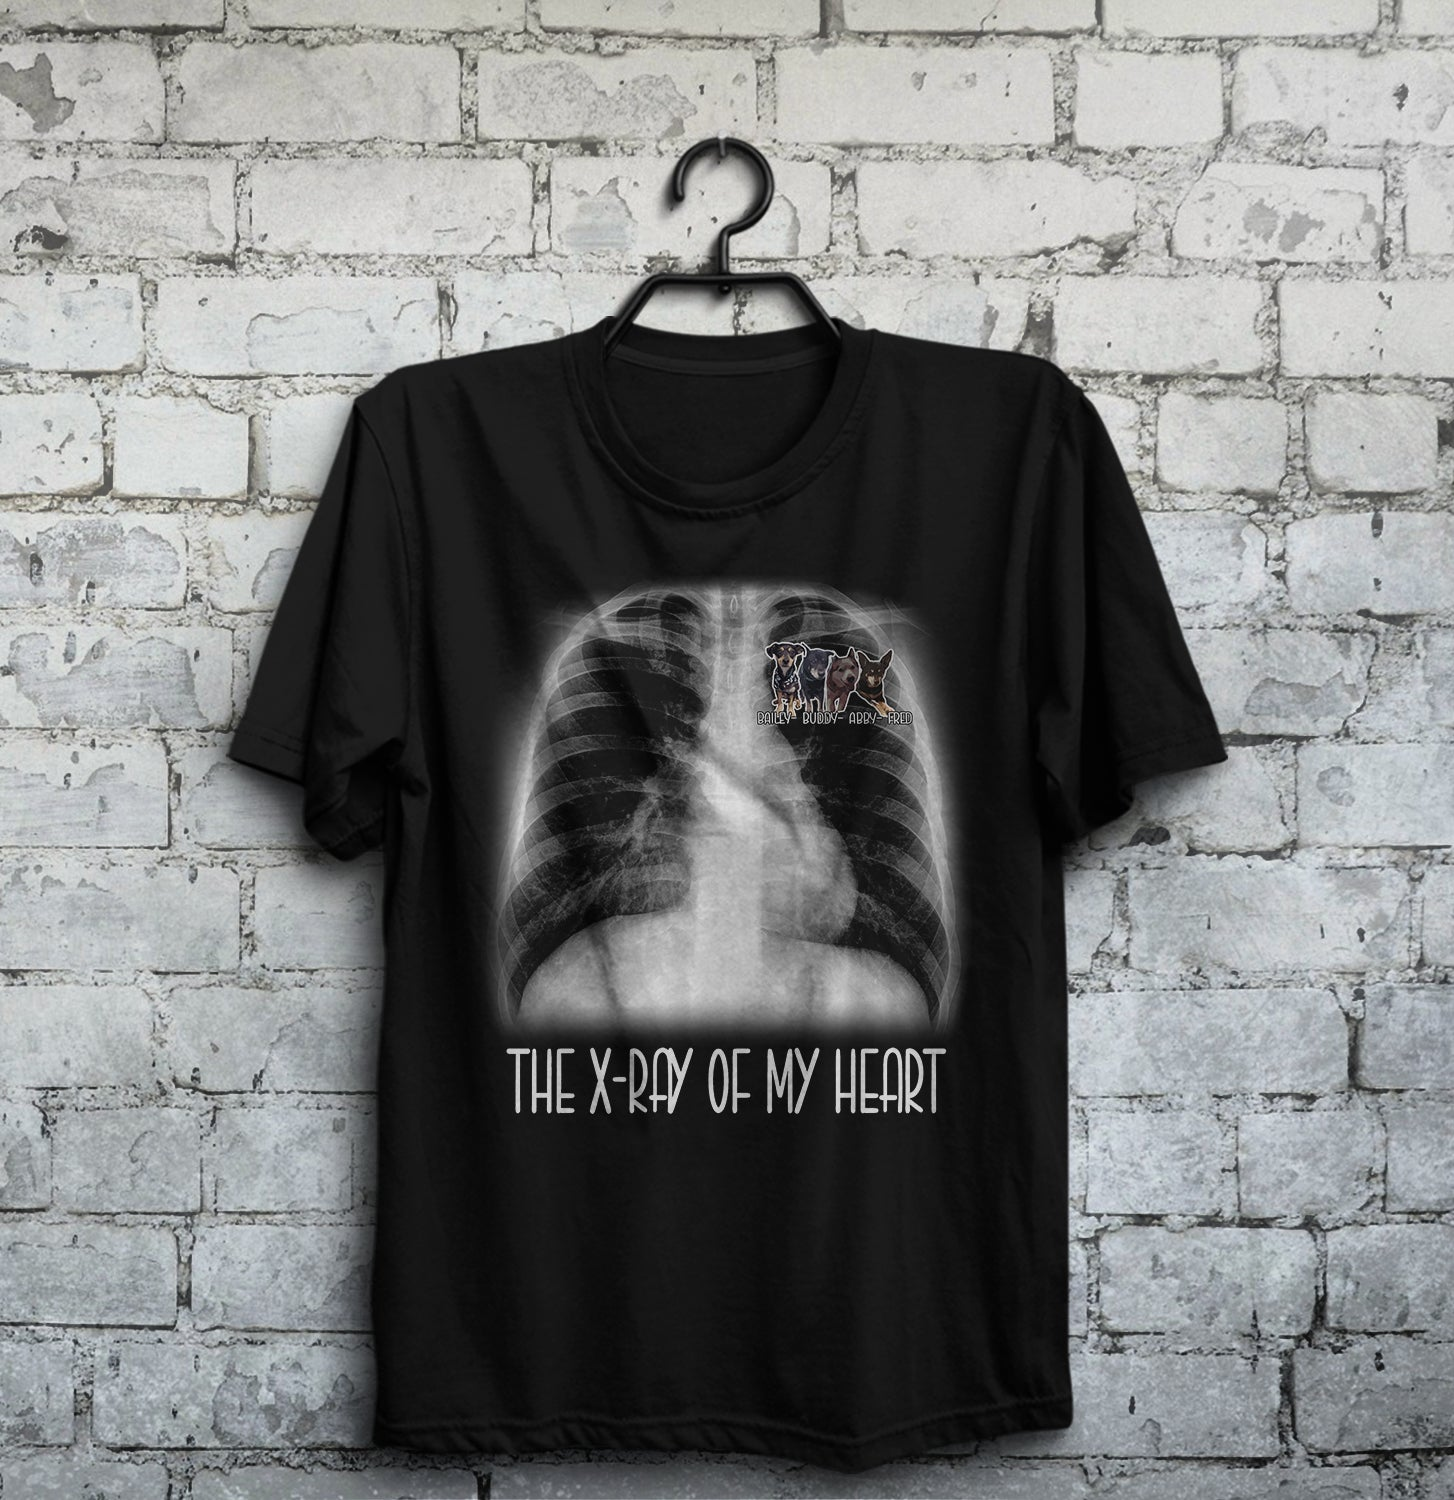 Personalized Dog Shirt - The X-ray of my heart Leora Lucas 2 customer